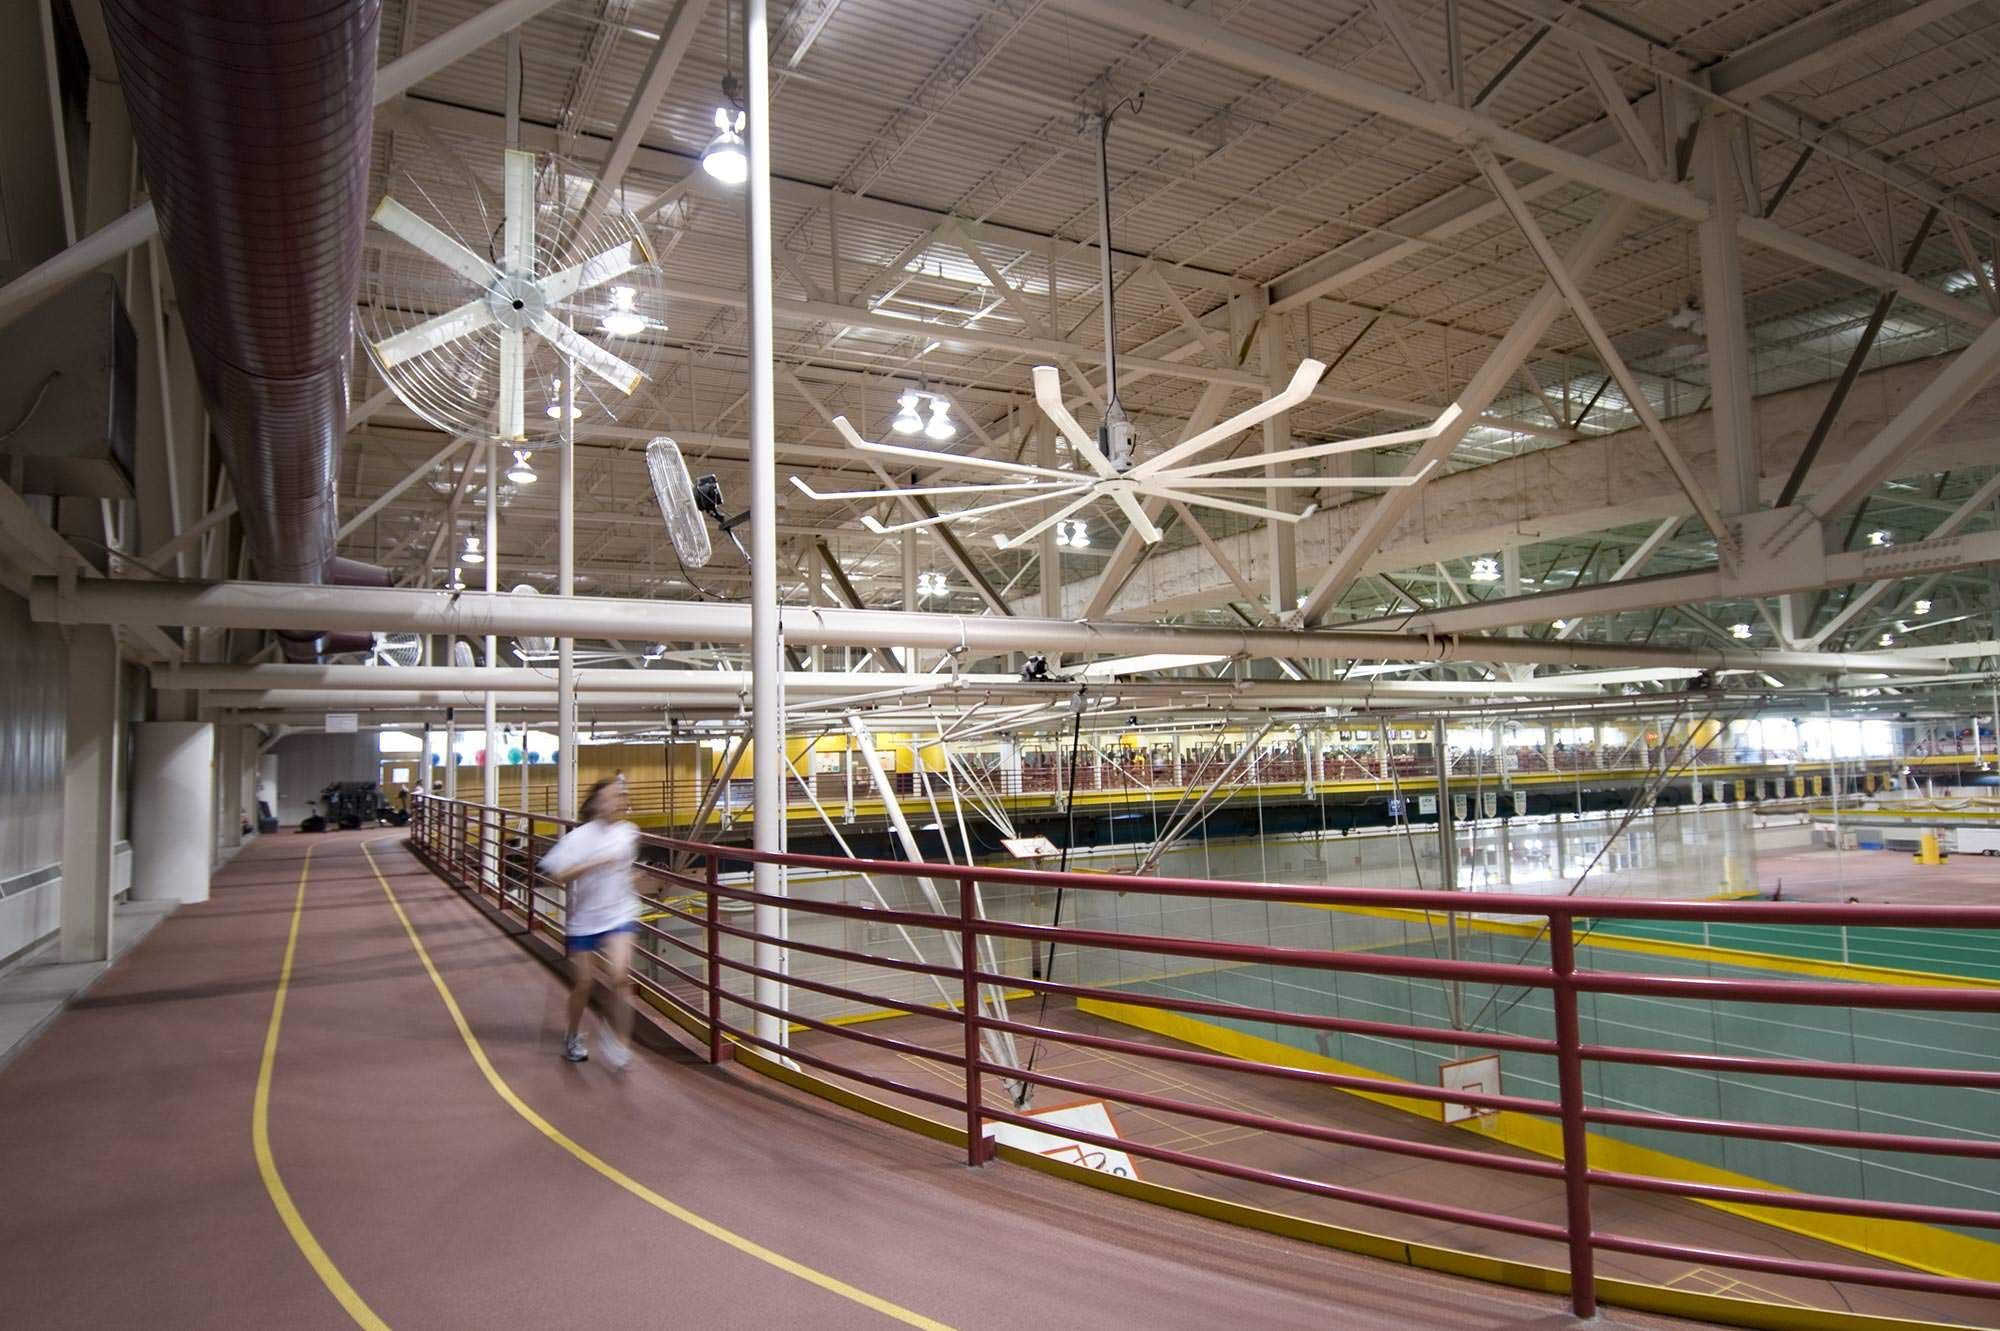 iowa state university's aging lied recreation athletic center needed